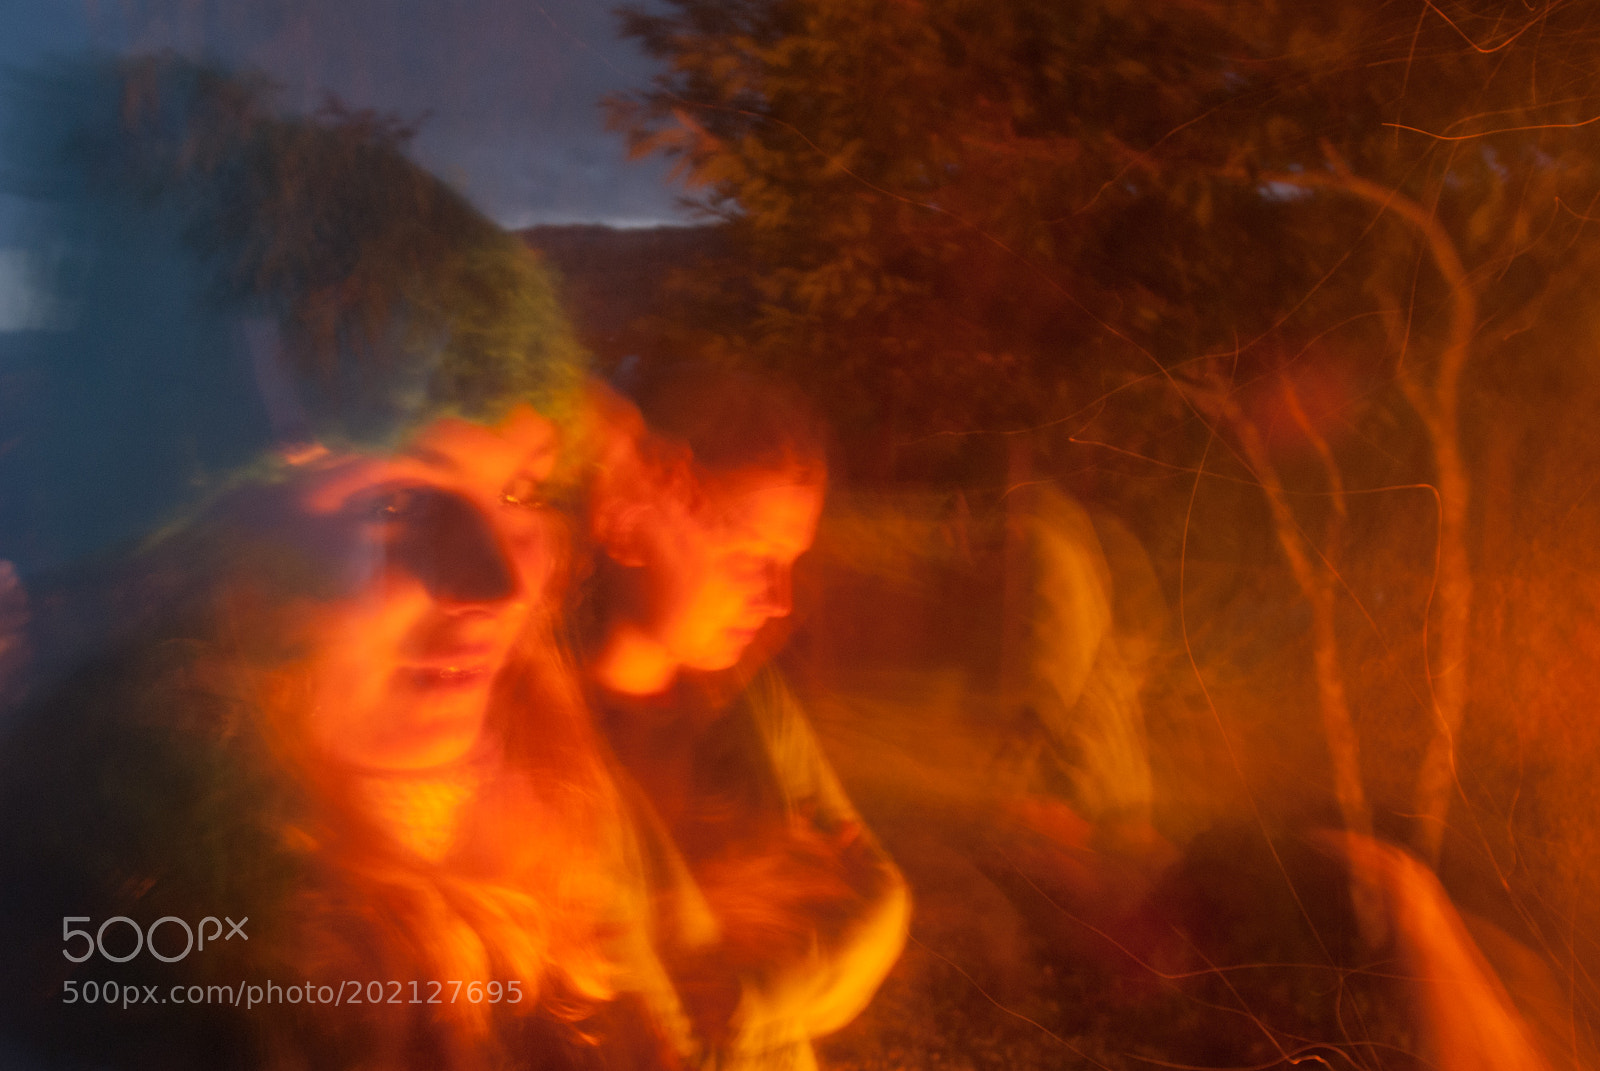 By the campfire photography